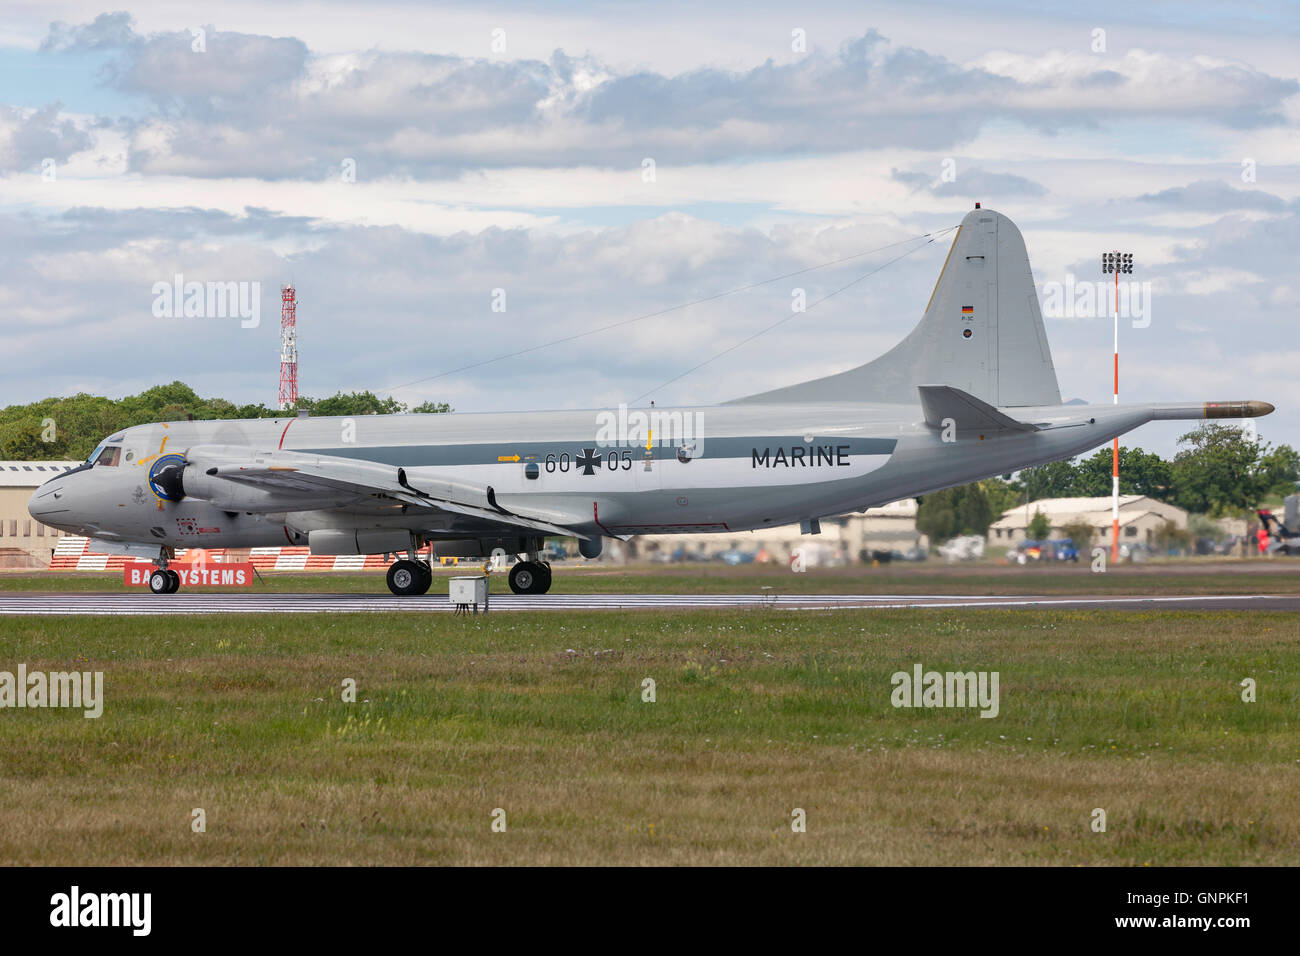 German Navy (Deutsche Marine) Lockheed P-3C Orion maritime patrol and surveillance aircraft. - Stock Image